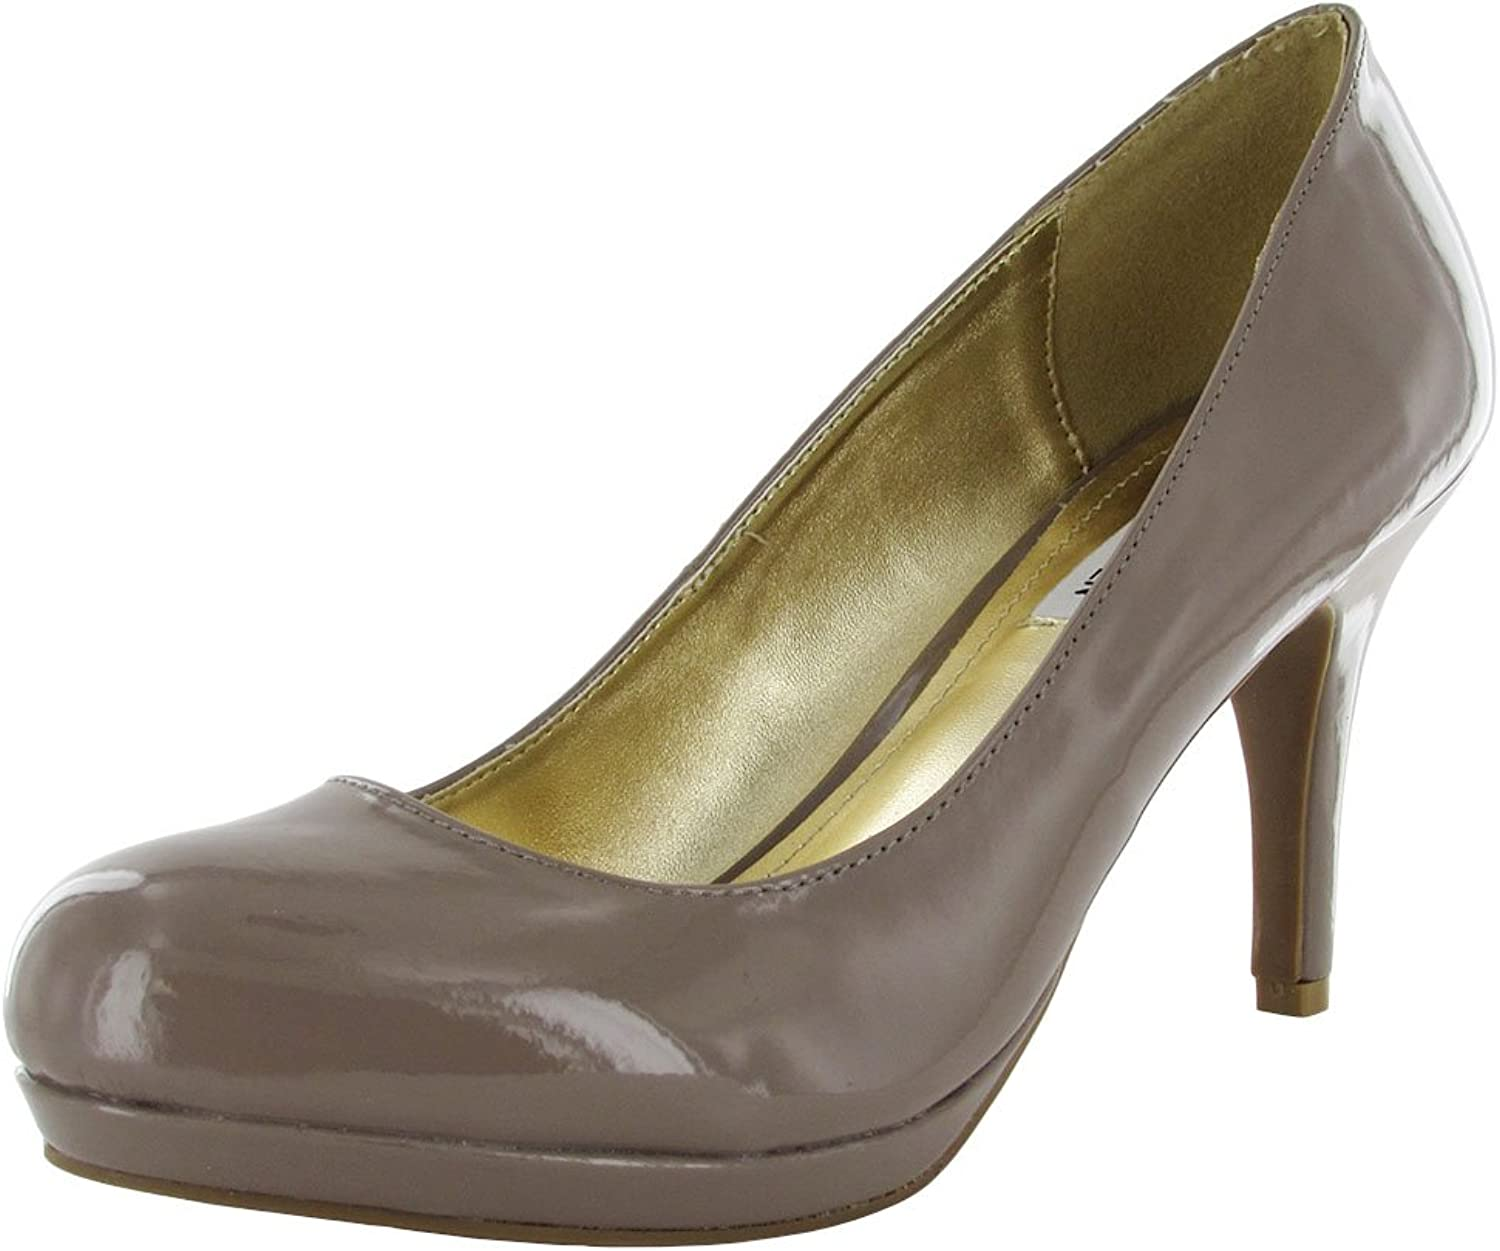 Steve Madden Womens P-Pollie Slide Stilleto Pump Heel, Taupe, US 9.5